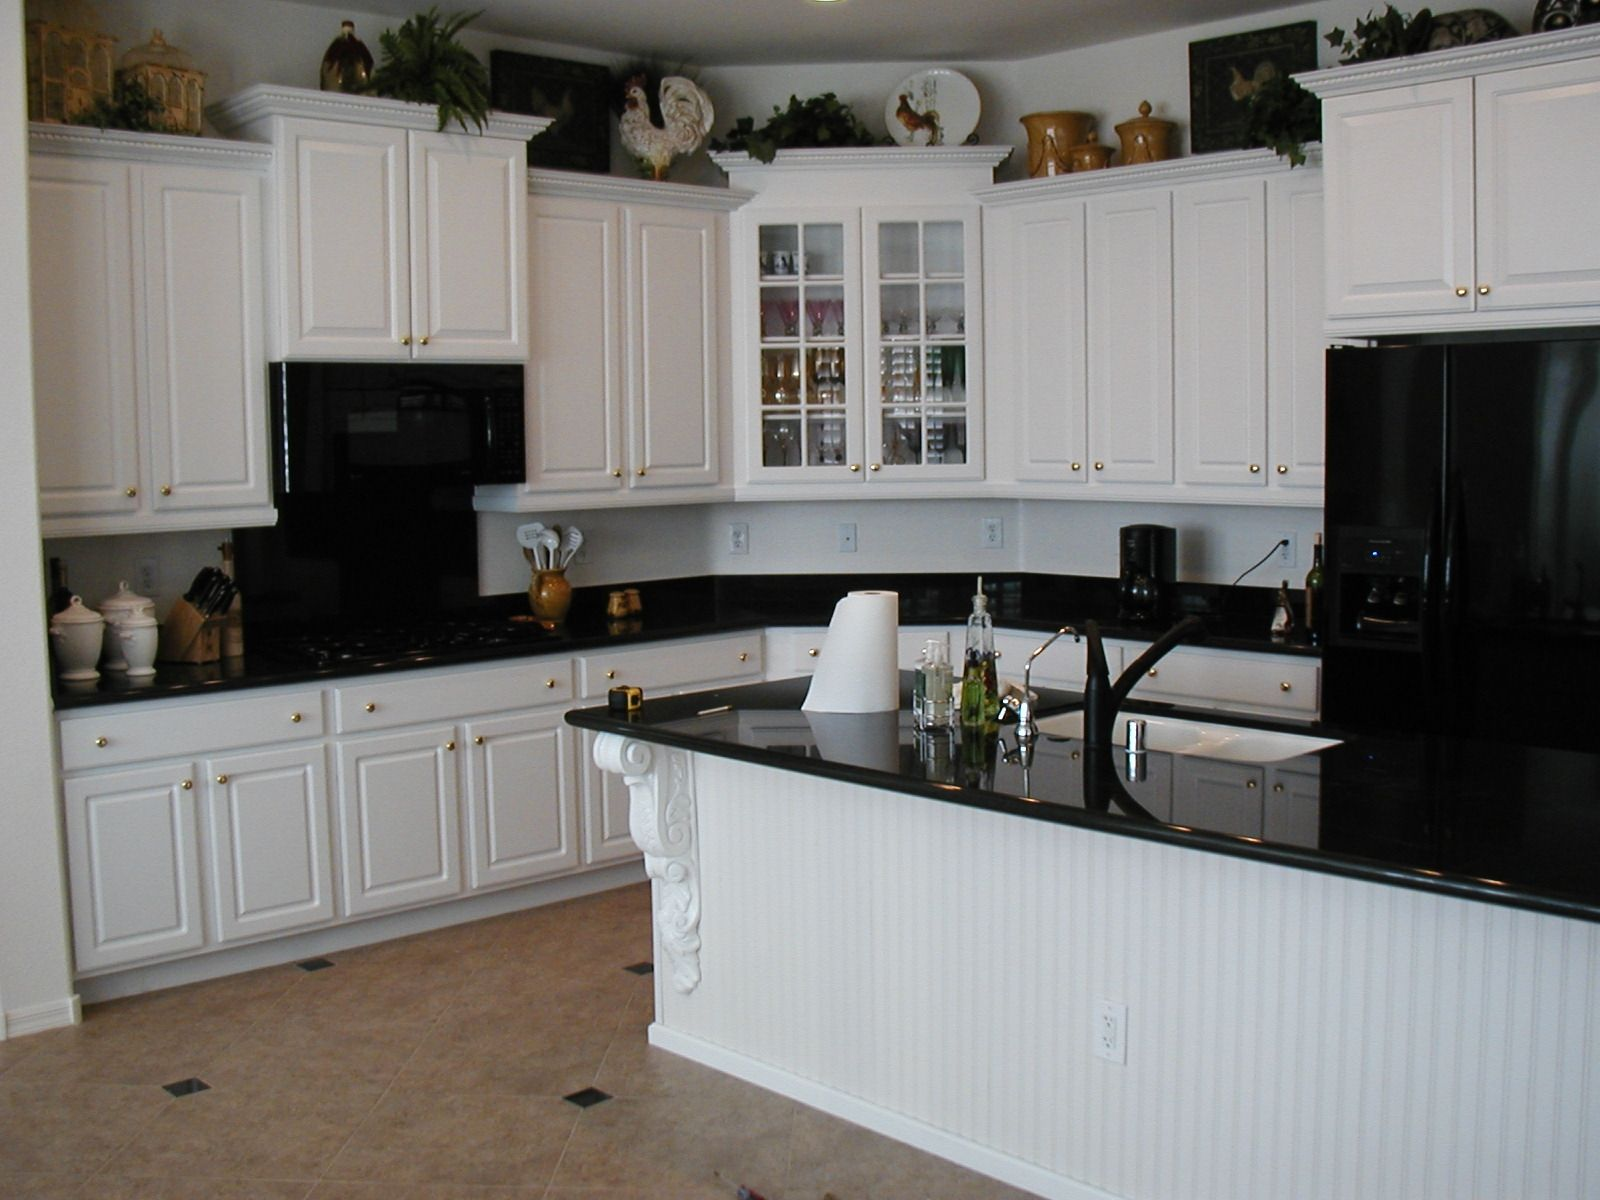 Kitchen Design White Cabinets Black Appliances creamy white kitchen cabinets with black appliances | are white